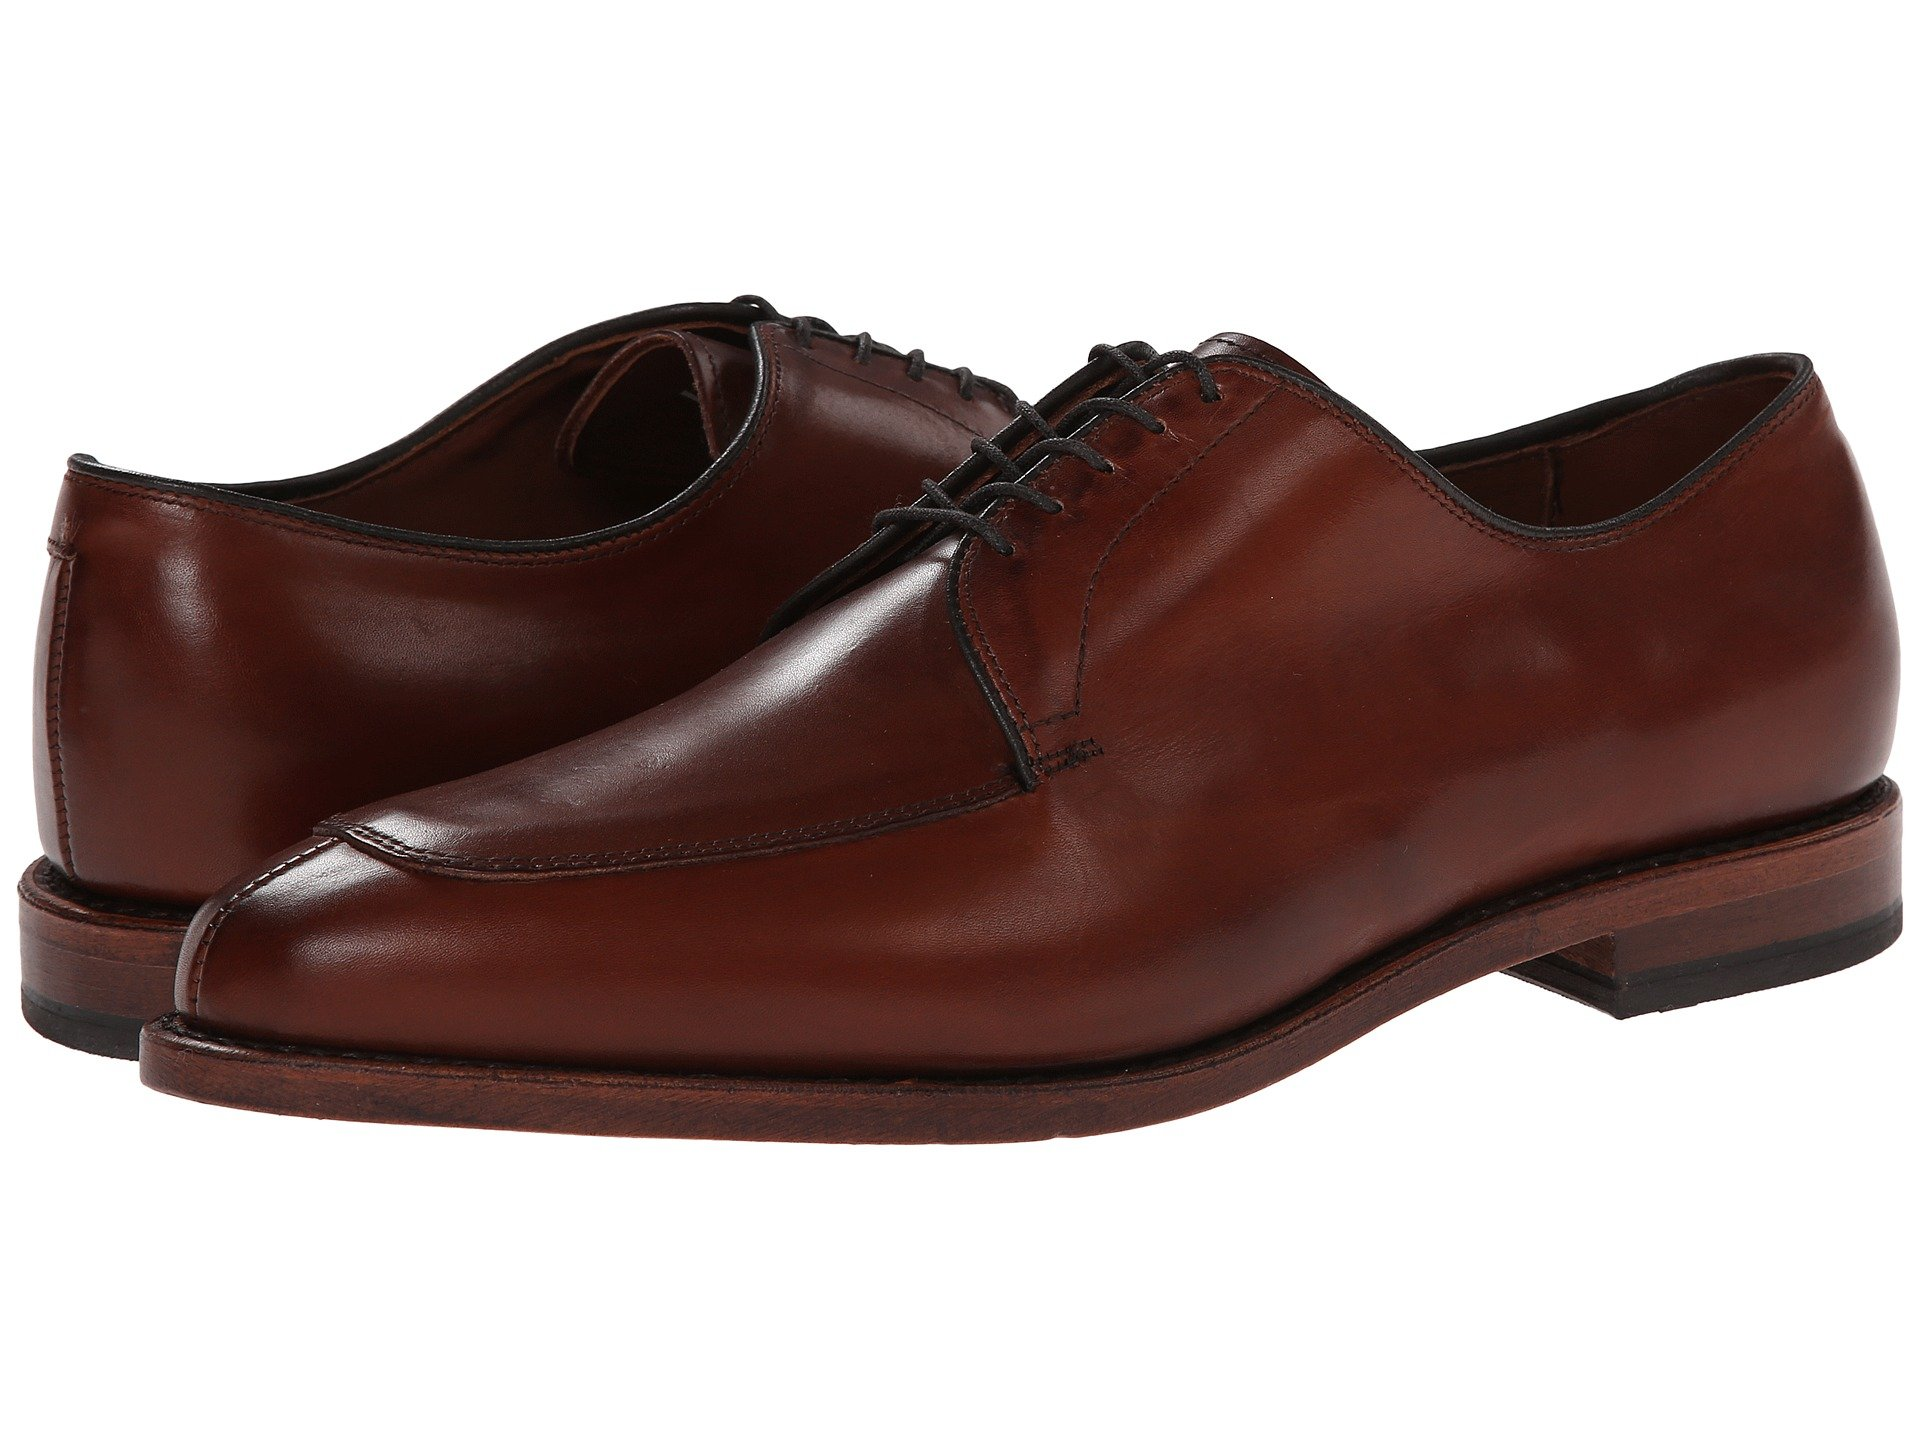 allen edmonds delray in chili - ultimate guide to buying, wearing, and caring for brown dress shoes